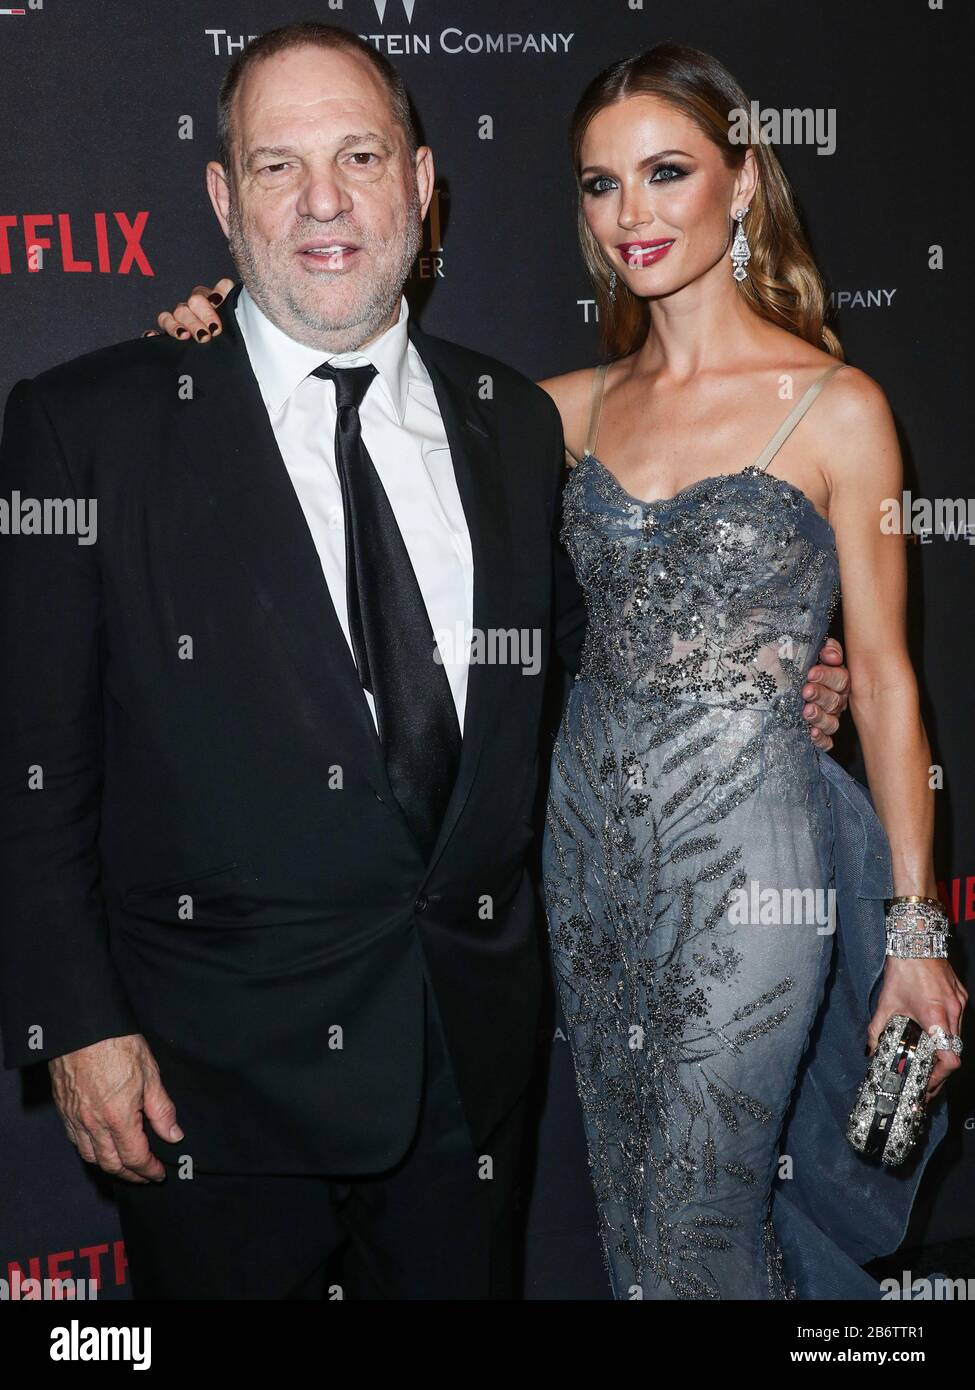 (FILE) 11th Mar 2020. Harvey Weinstein Sentenced to 23 Years in Prison. Harvey Weinstein will spend 23 years in a New York State prison after being sentenced by Supreme Court Judge James Burke on the morning of Wednesday, March 11, 2020. In pic: BEVERLY Hills.LES, CALIFORNIA, USA - JAN 08: Harvey Weinstein and wife/fashion designer Georgina Chapman arrive at The Weinstein Company and Netflix Golden Globe Party, presented with FIJI Water, Grey Goose Vodka, Lindt Chocolate, and Moroccan Oil held at The Beverly Hilton Hotel on Jan 8, 2017. Credit: Image Press Agency/Alamy Live News Stock Photo